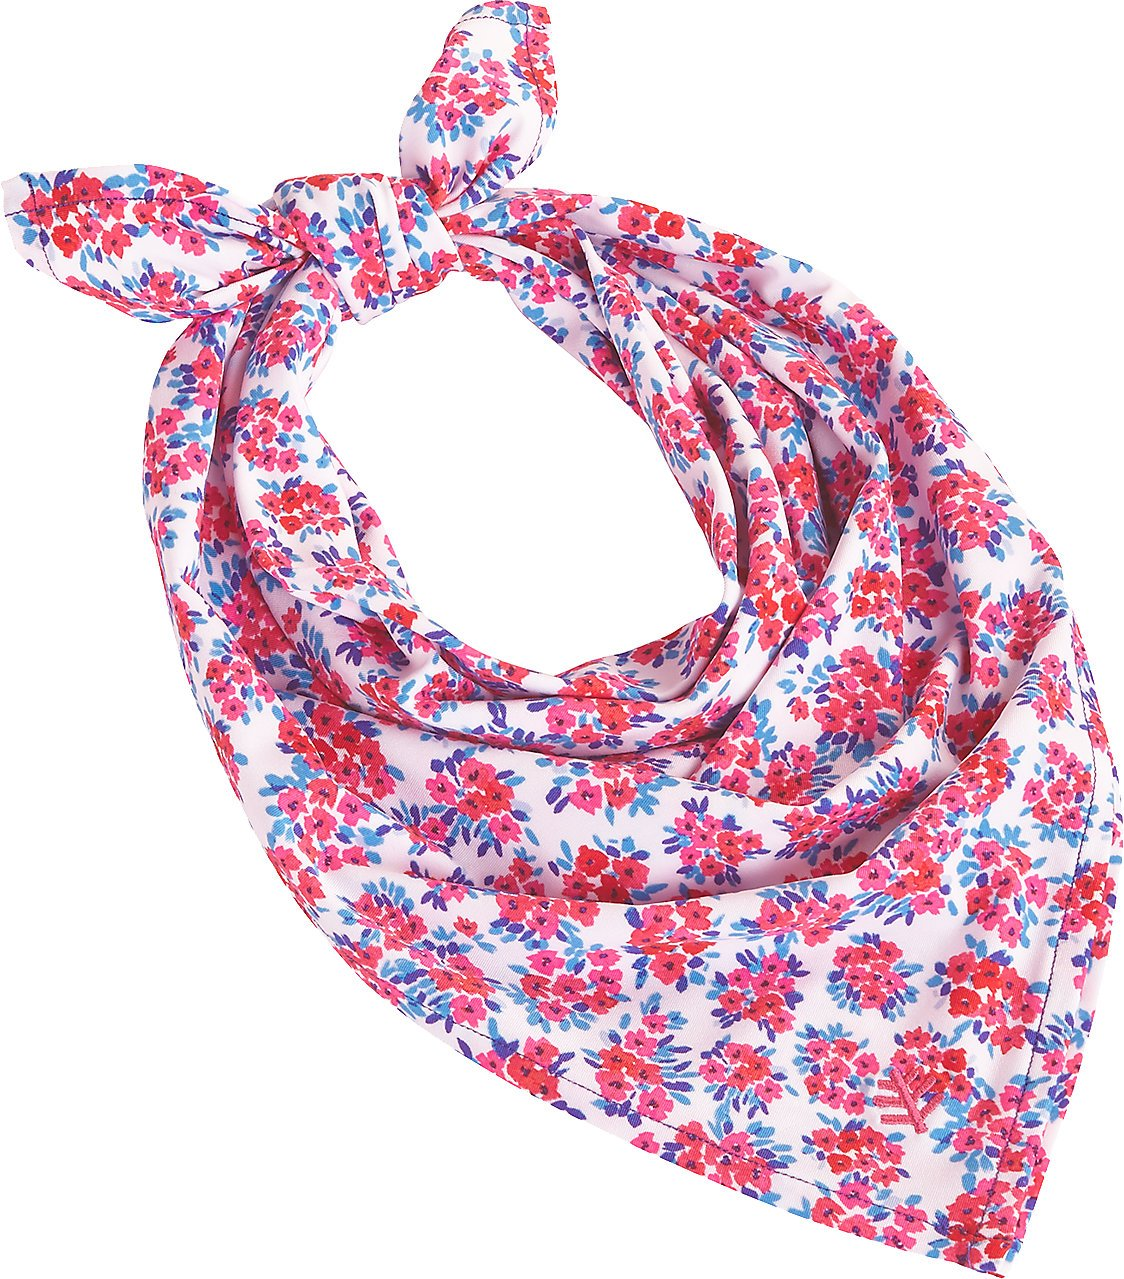 Coolibar UPF 50+ Girl's Aqua Bandana - Sun Protective (One Size- Pink/White Watercolor Floral)